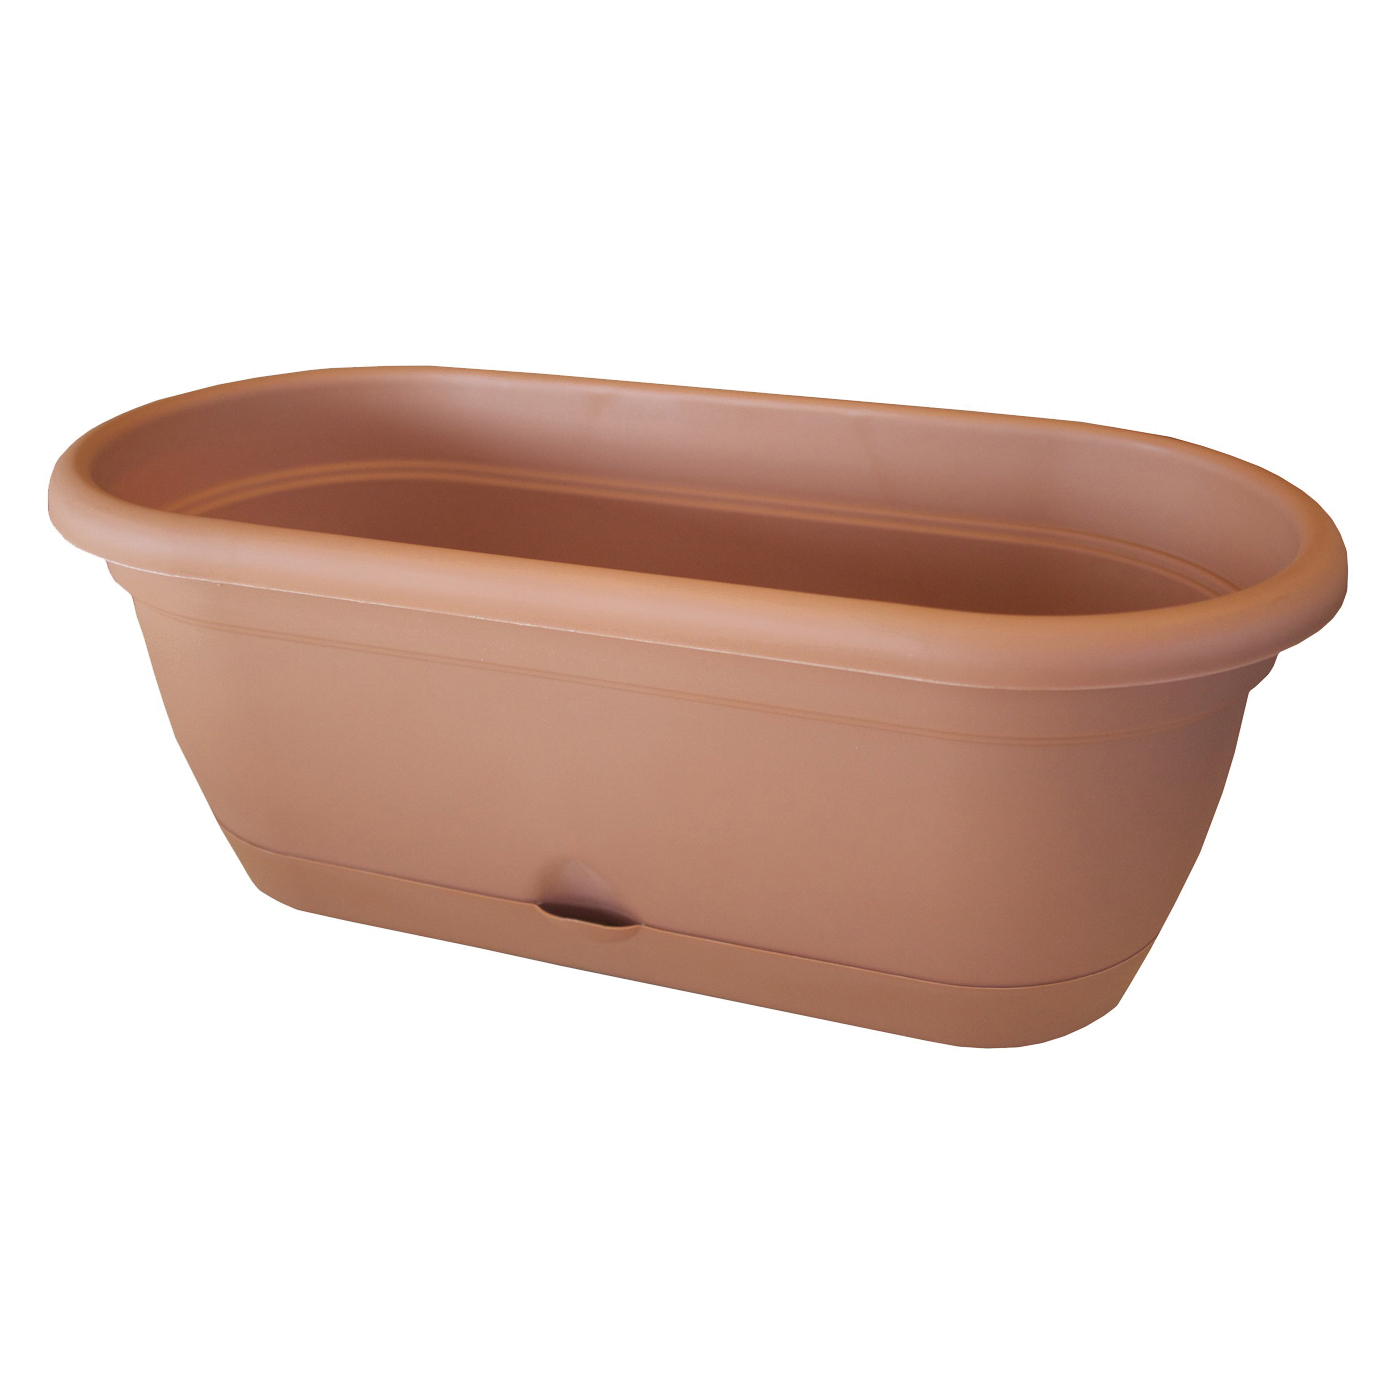 Picture of Bloem Lucca LWB1846 Window Box Planter, 7-1/2 in W, 9.13 in D, Box, Polypropylene, Terracotta